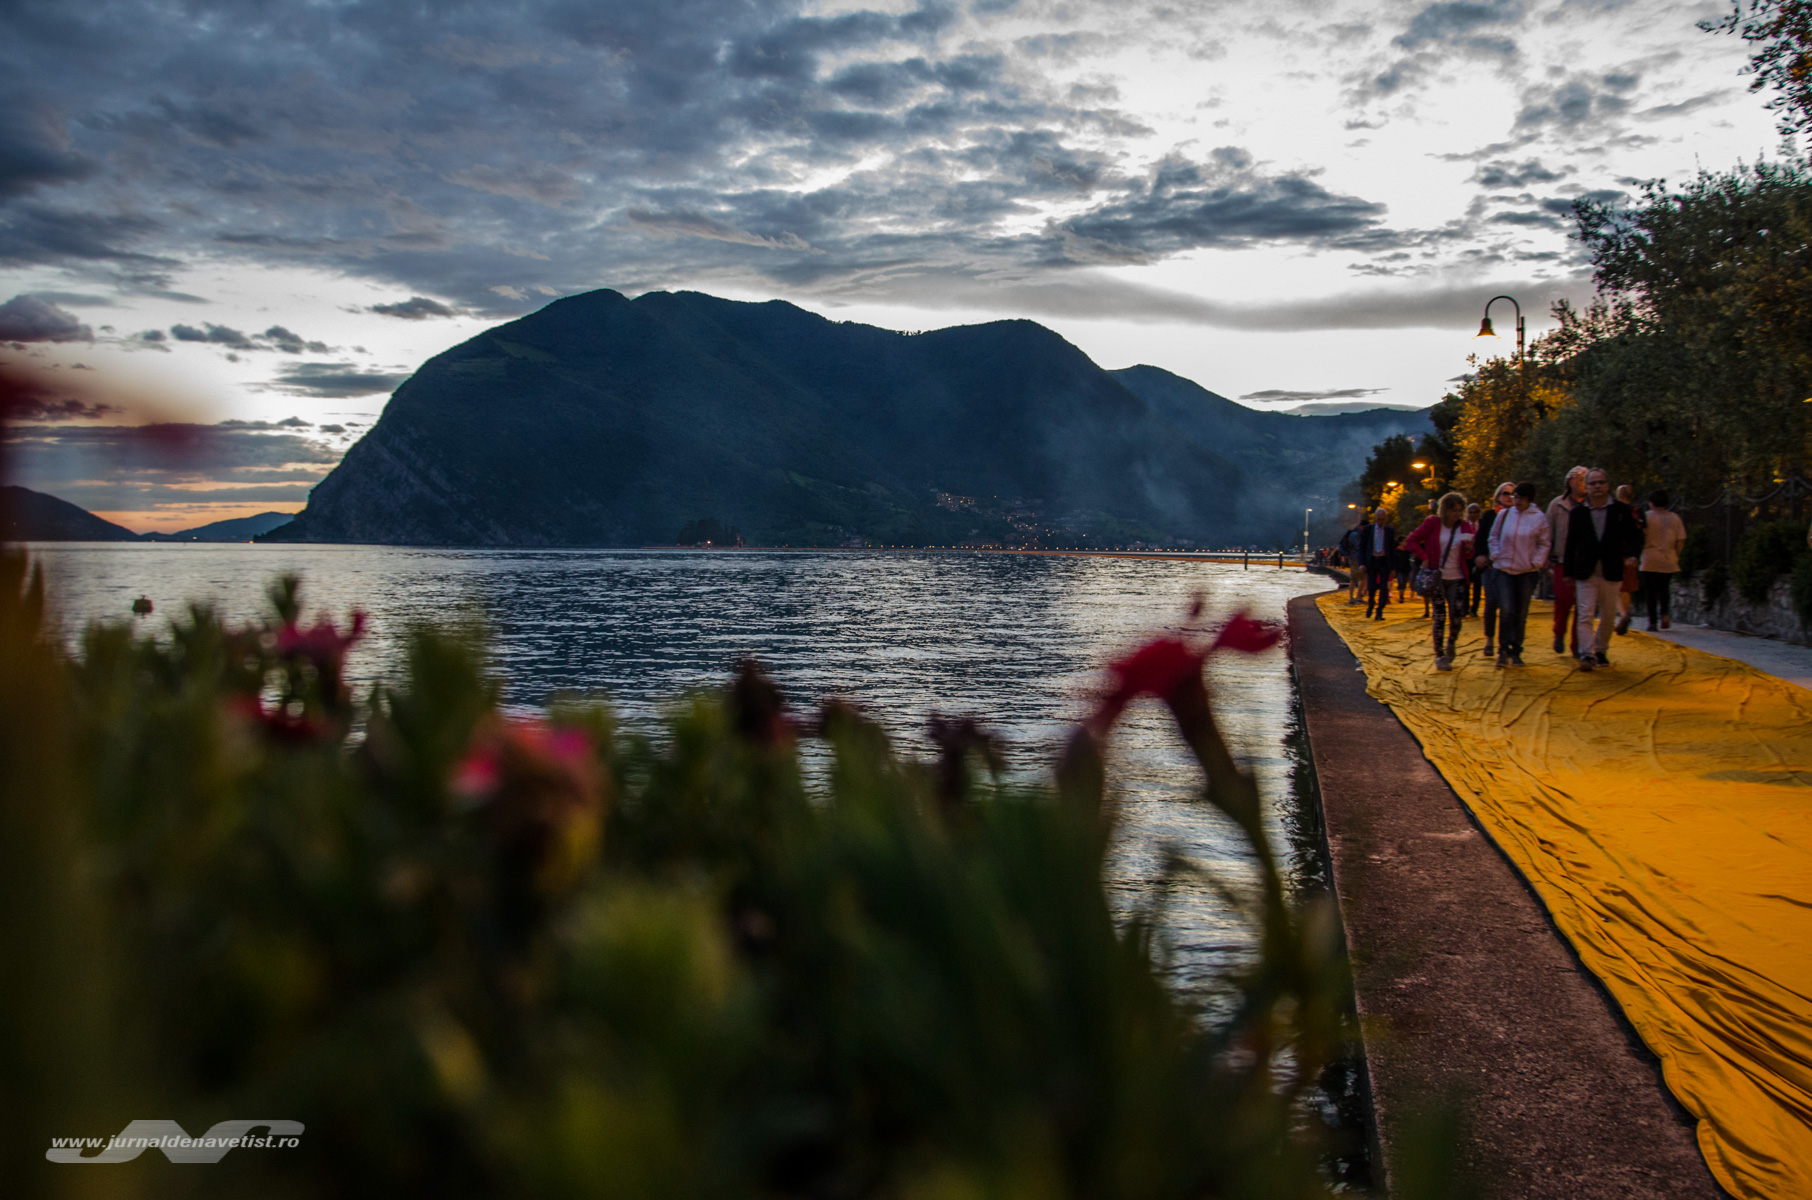 The Floating Piers 8080